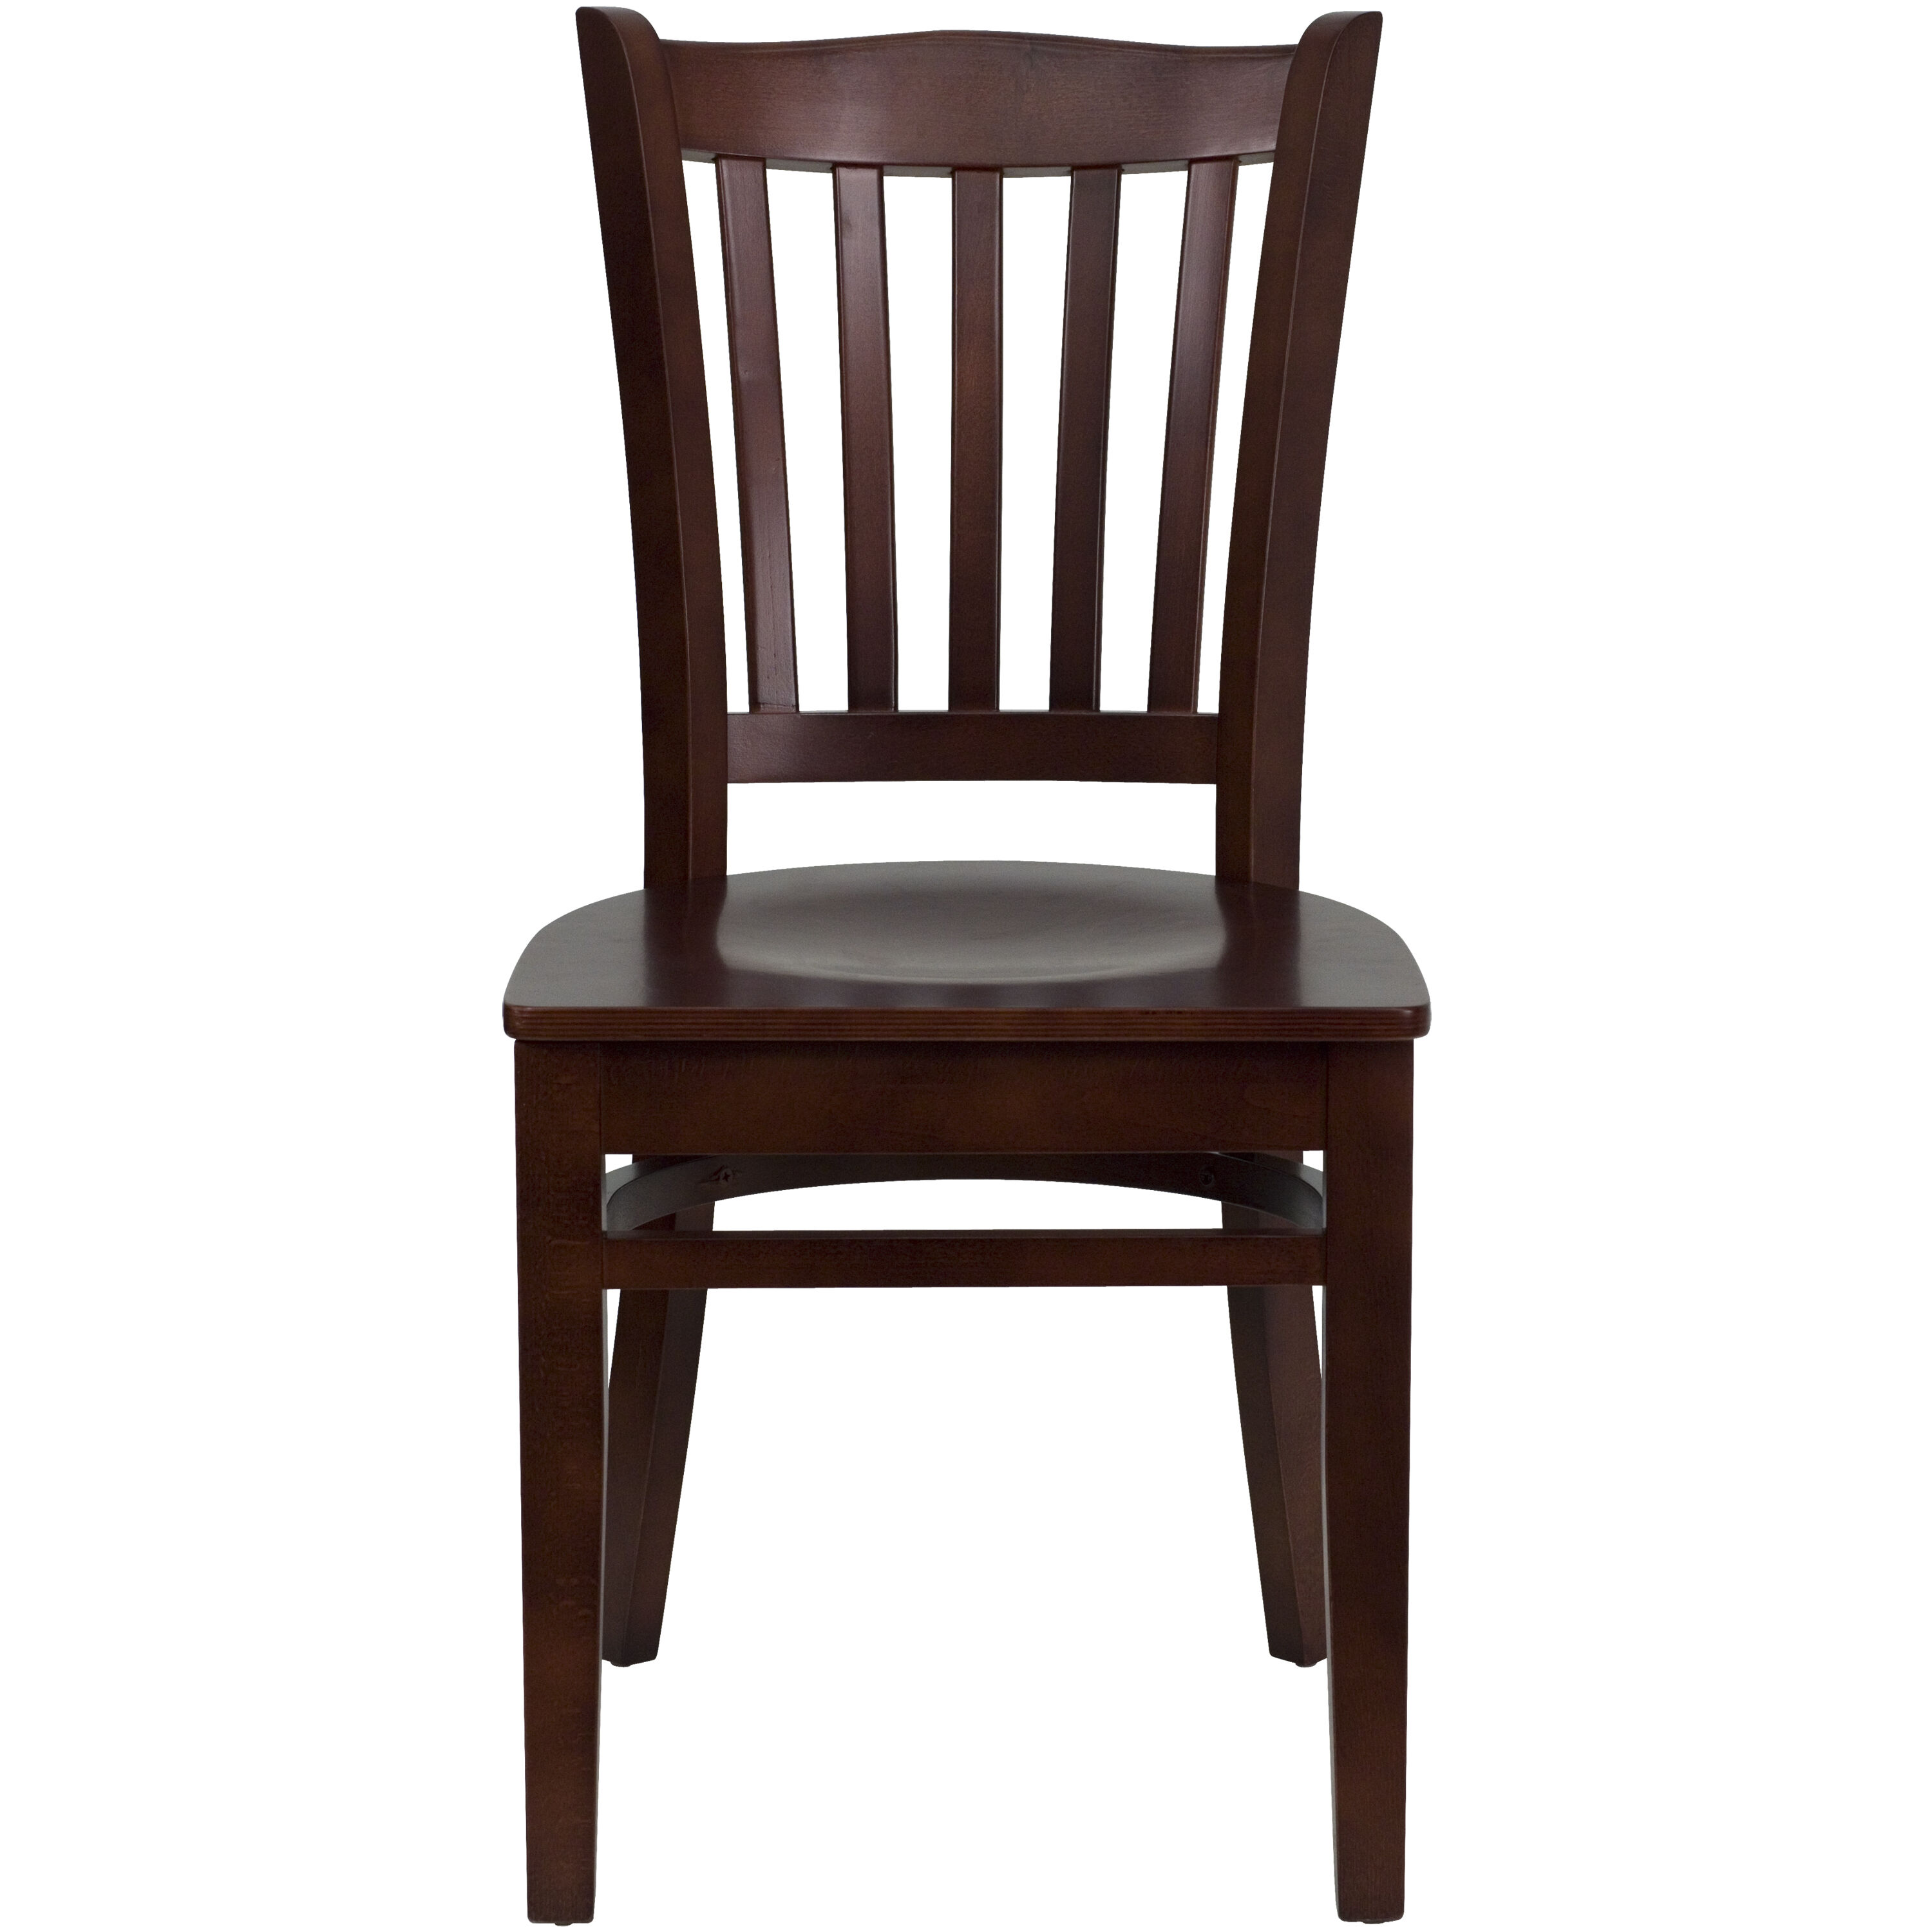 restaurant supply chairs pc gaming chair mahogany wood dining bfdh 8242mm tdr